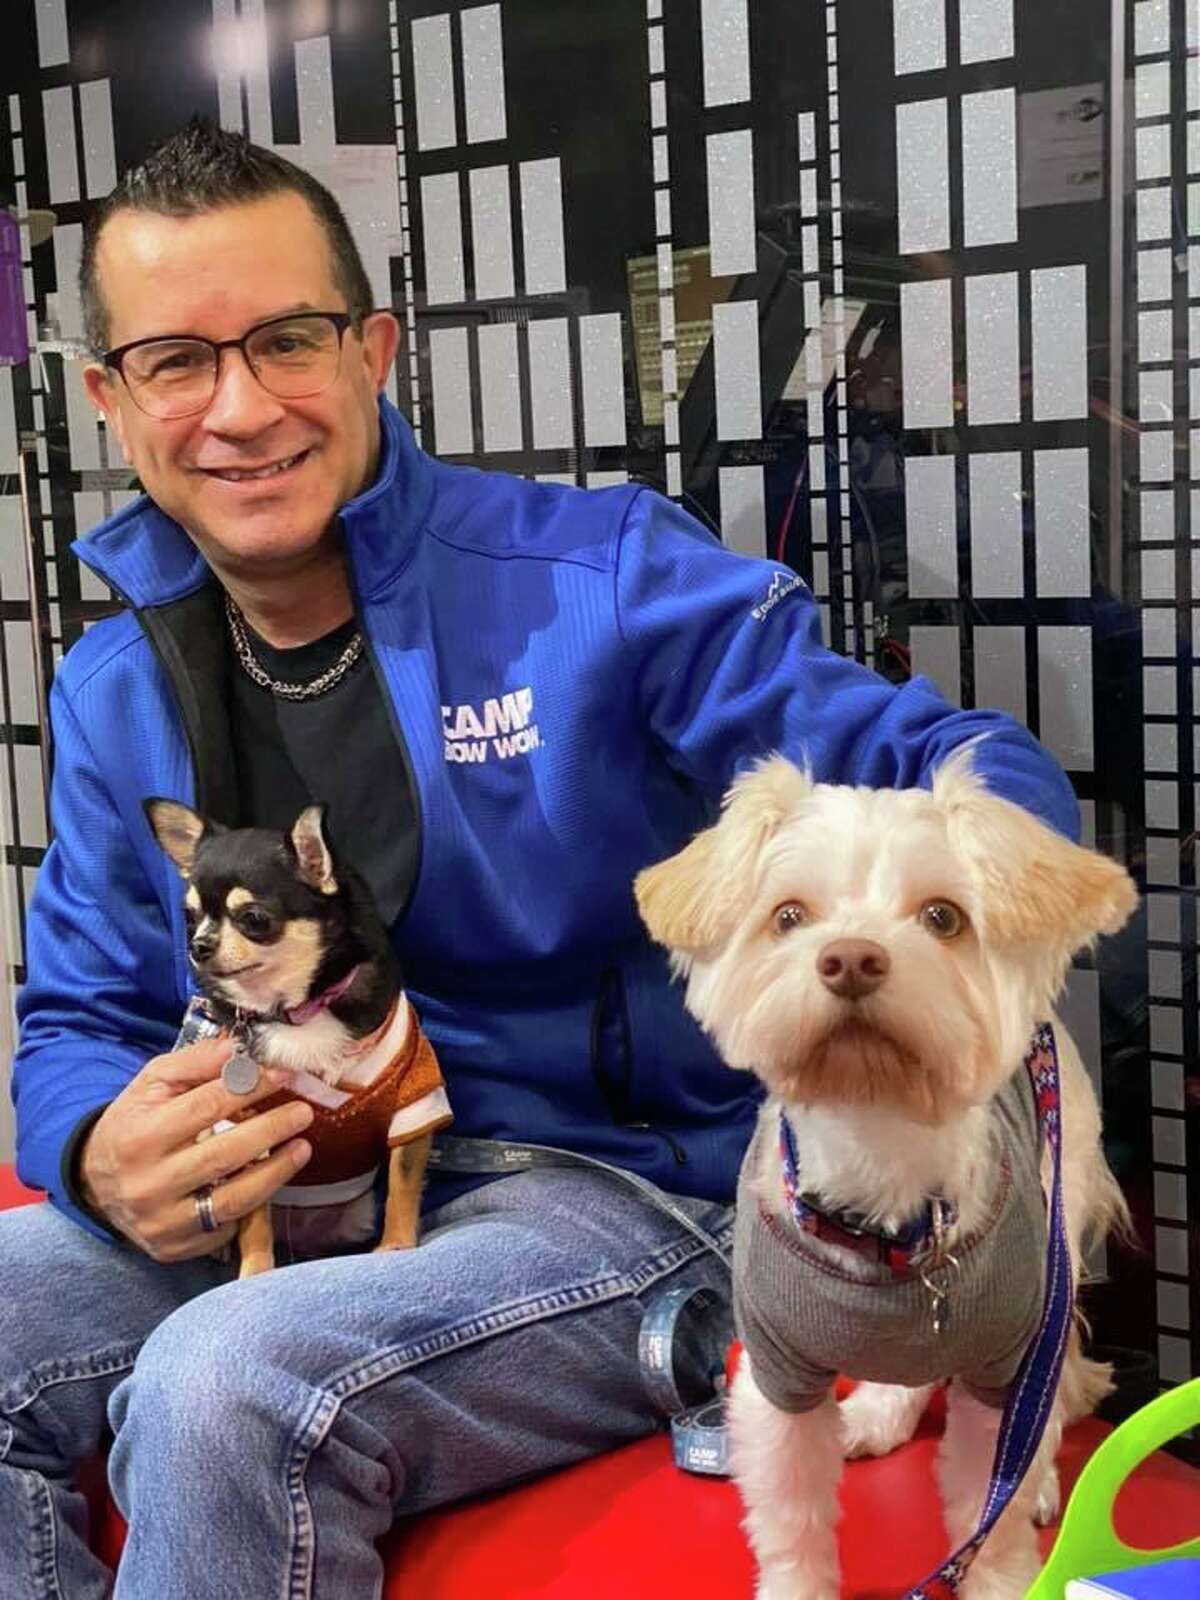 Jose Morillo will open a Camp Bow Wow location at 16641 Telge Road in Cypress in March.